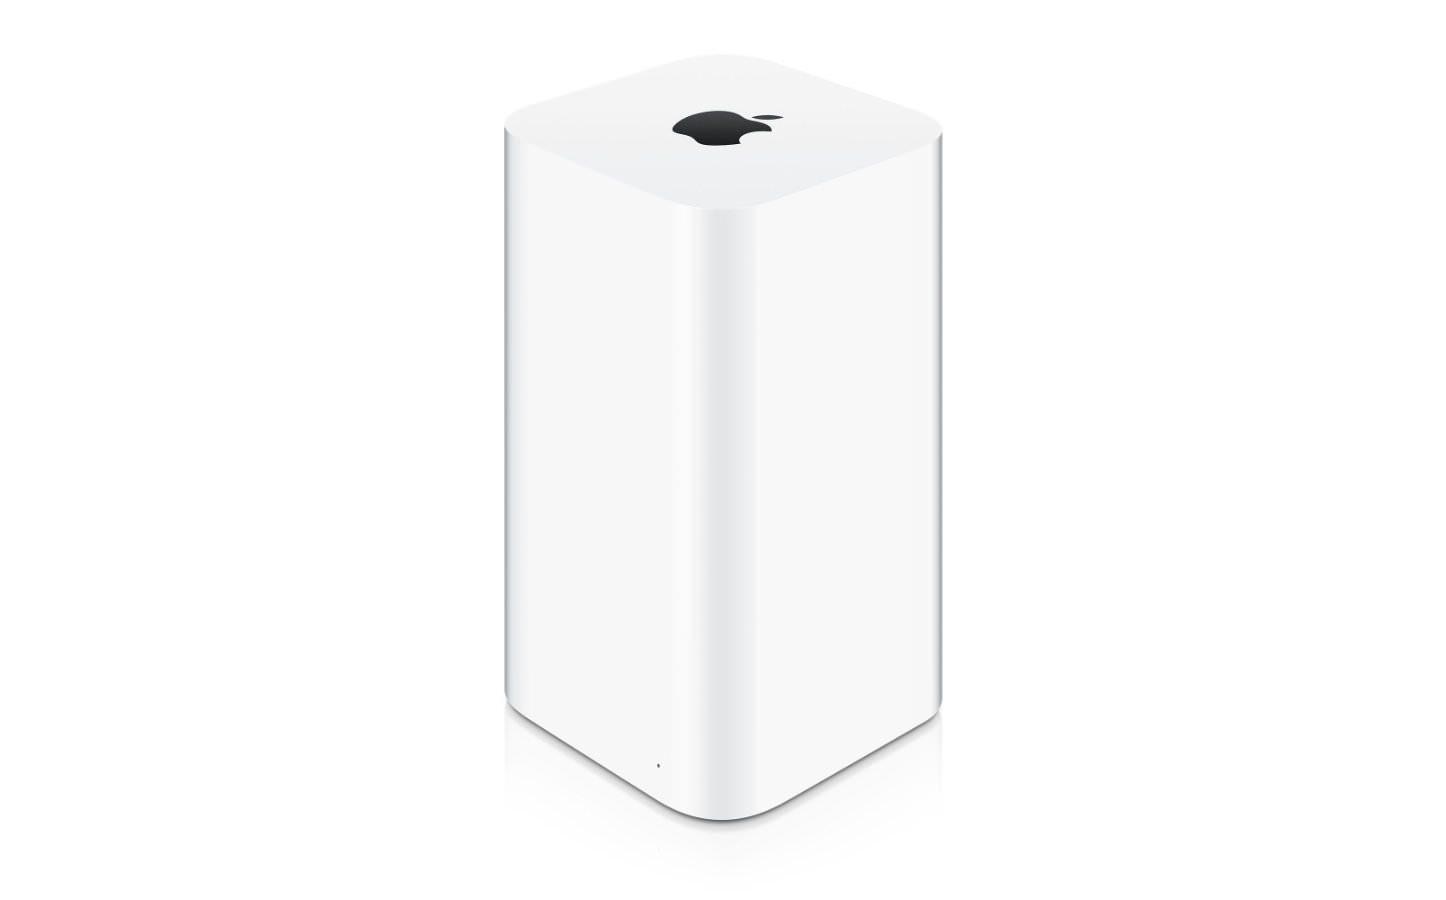 apple-time-capsule-extreme.jpg